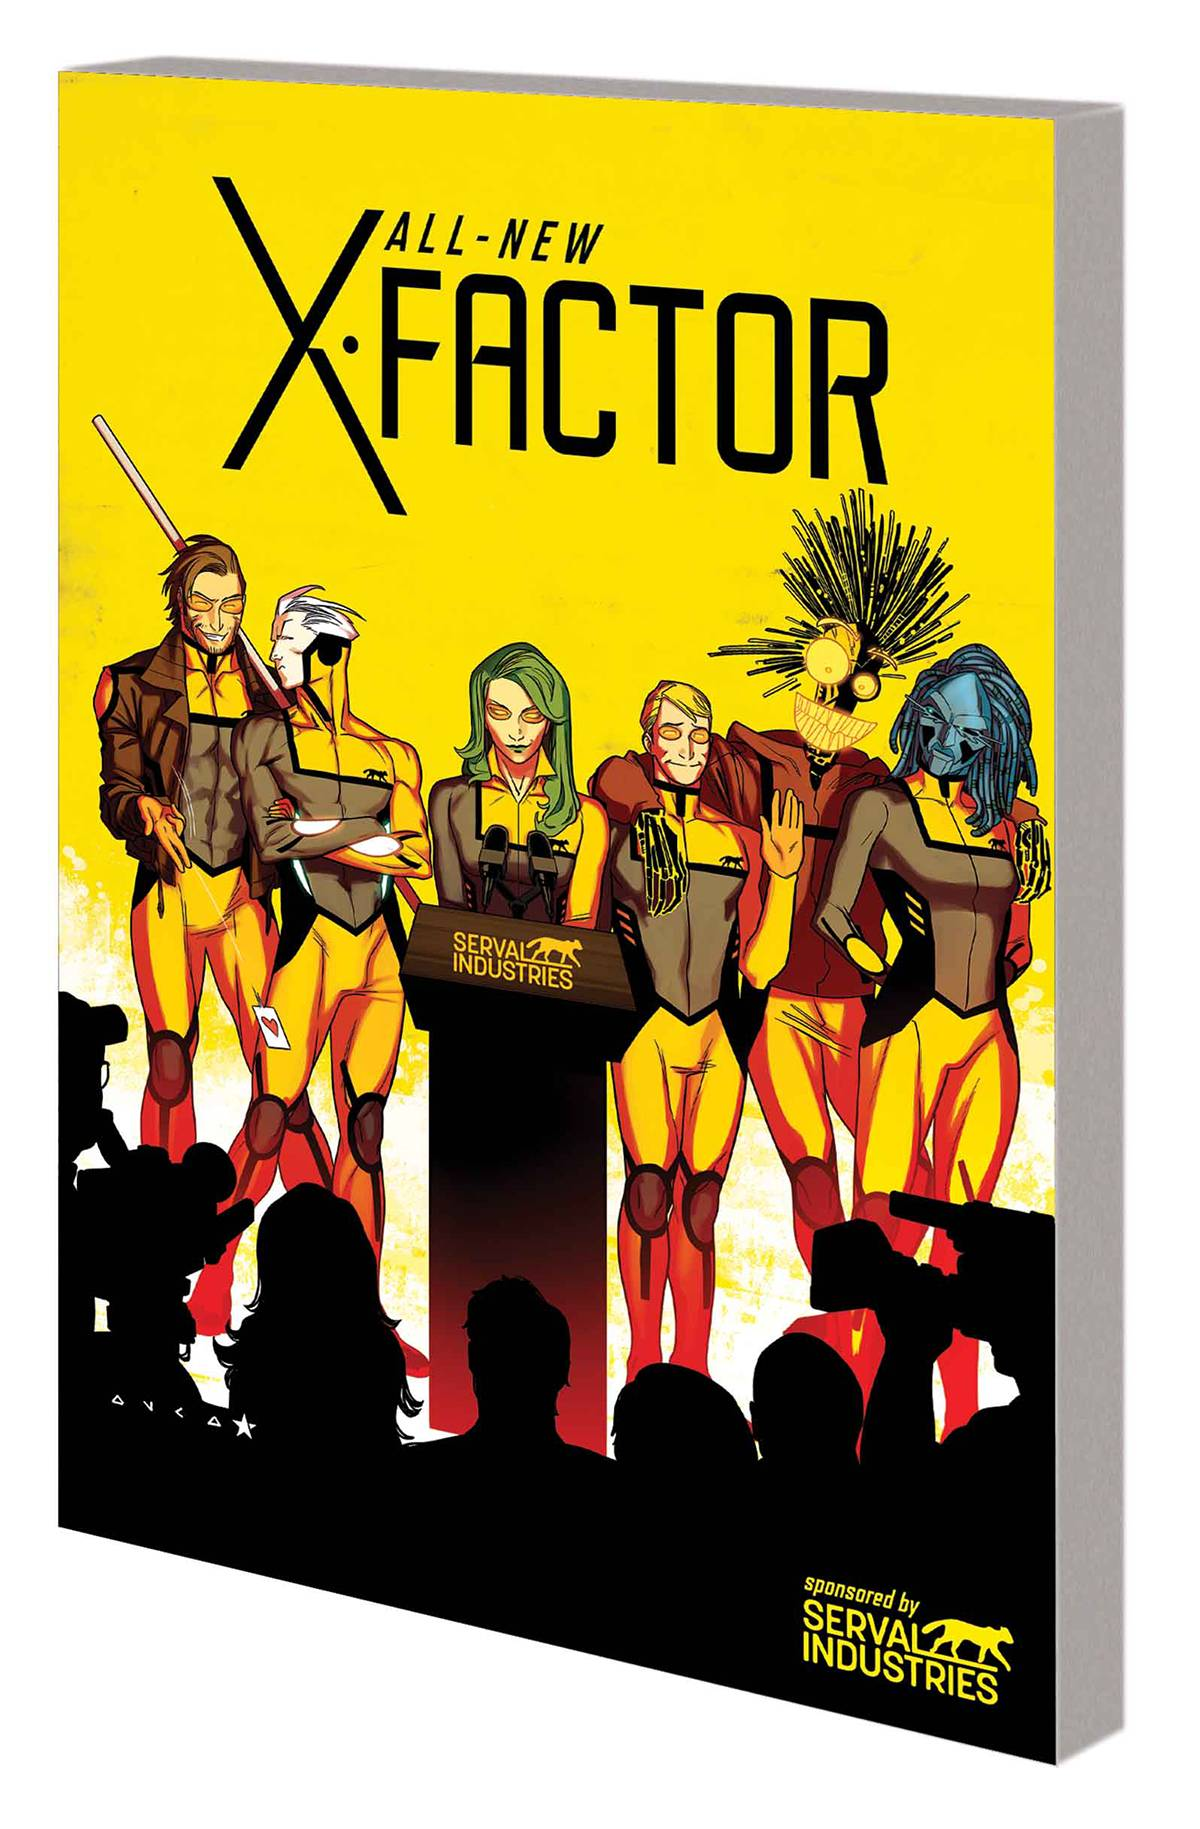 All New X-Factor TP Vol. 2 Change of Decay